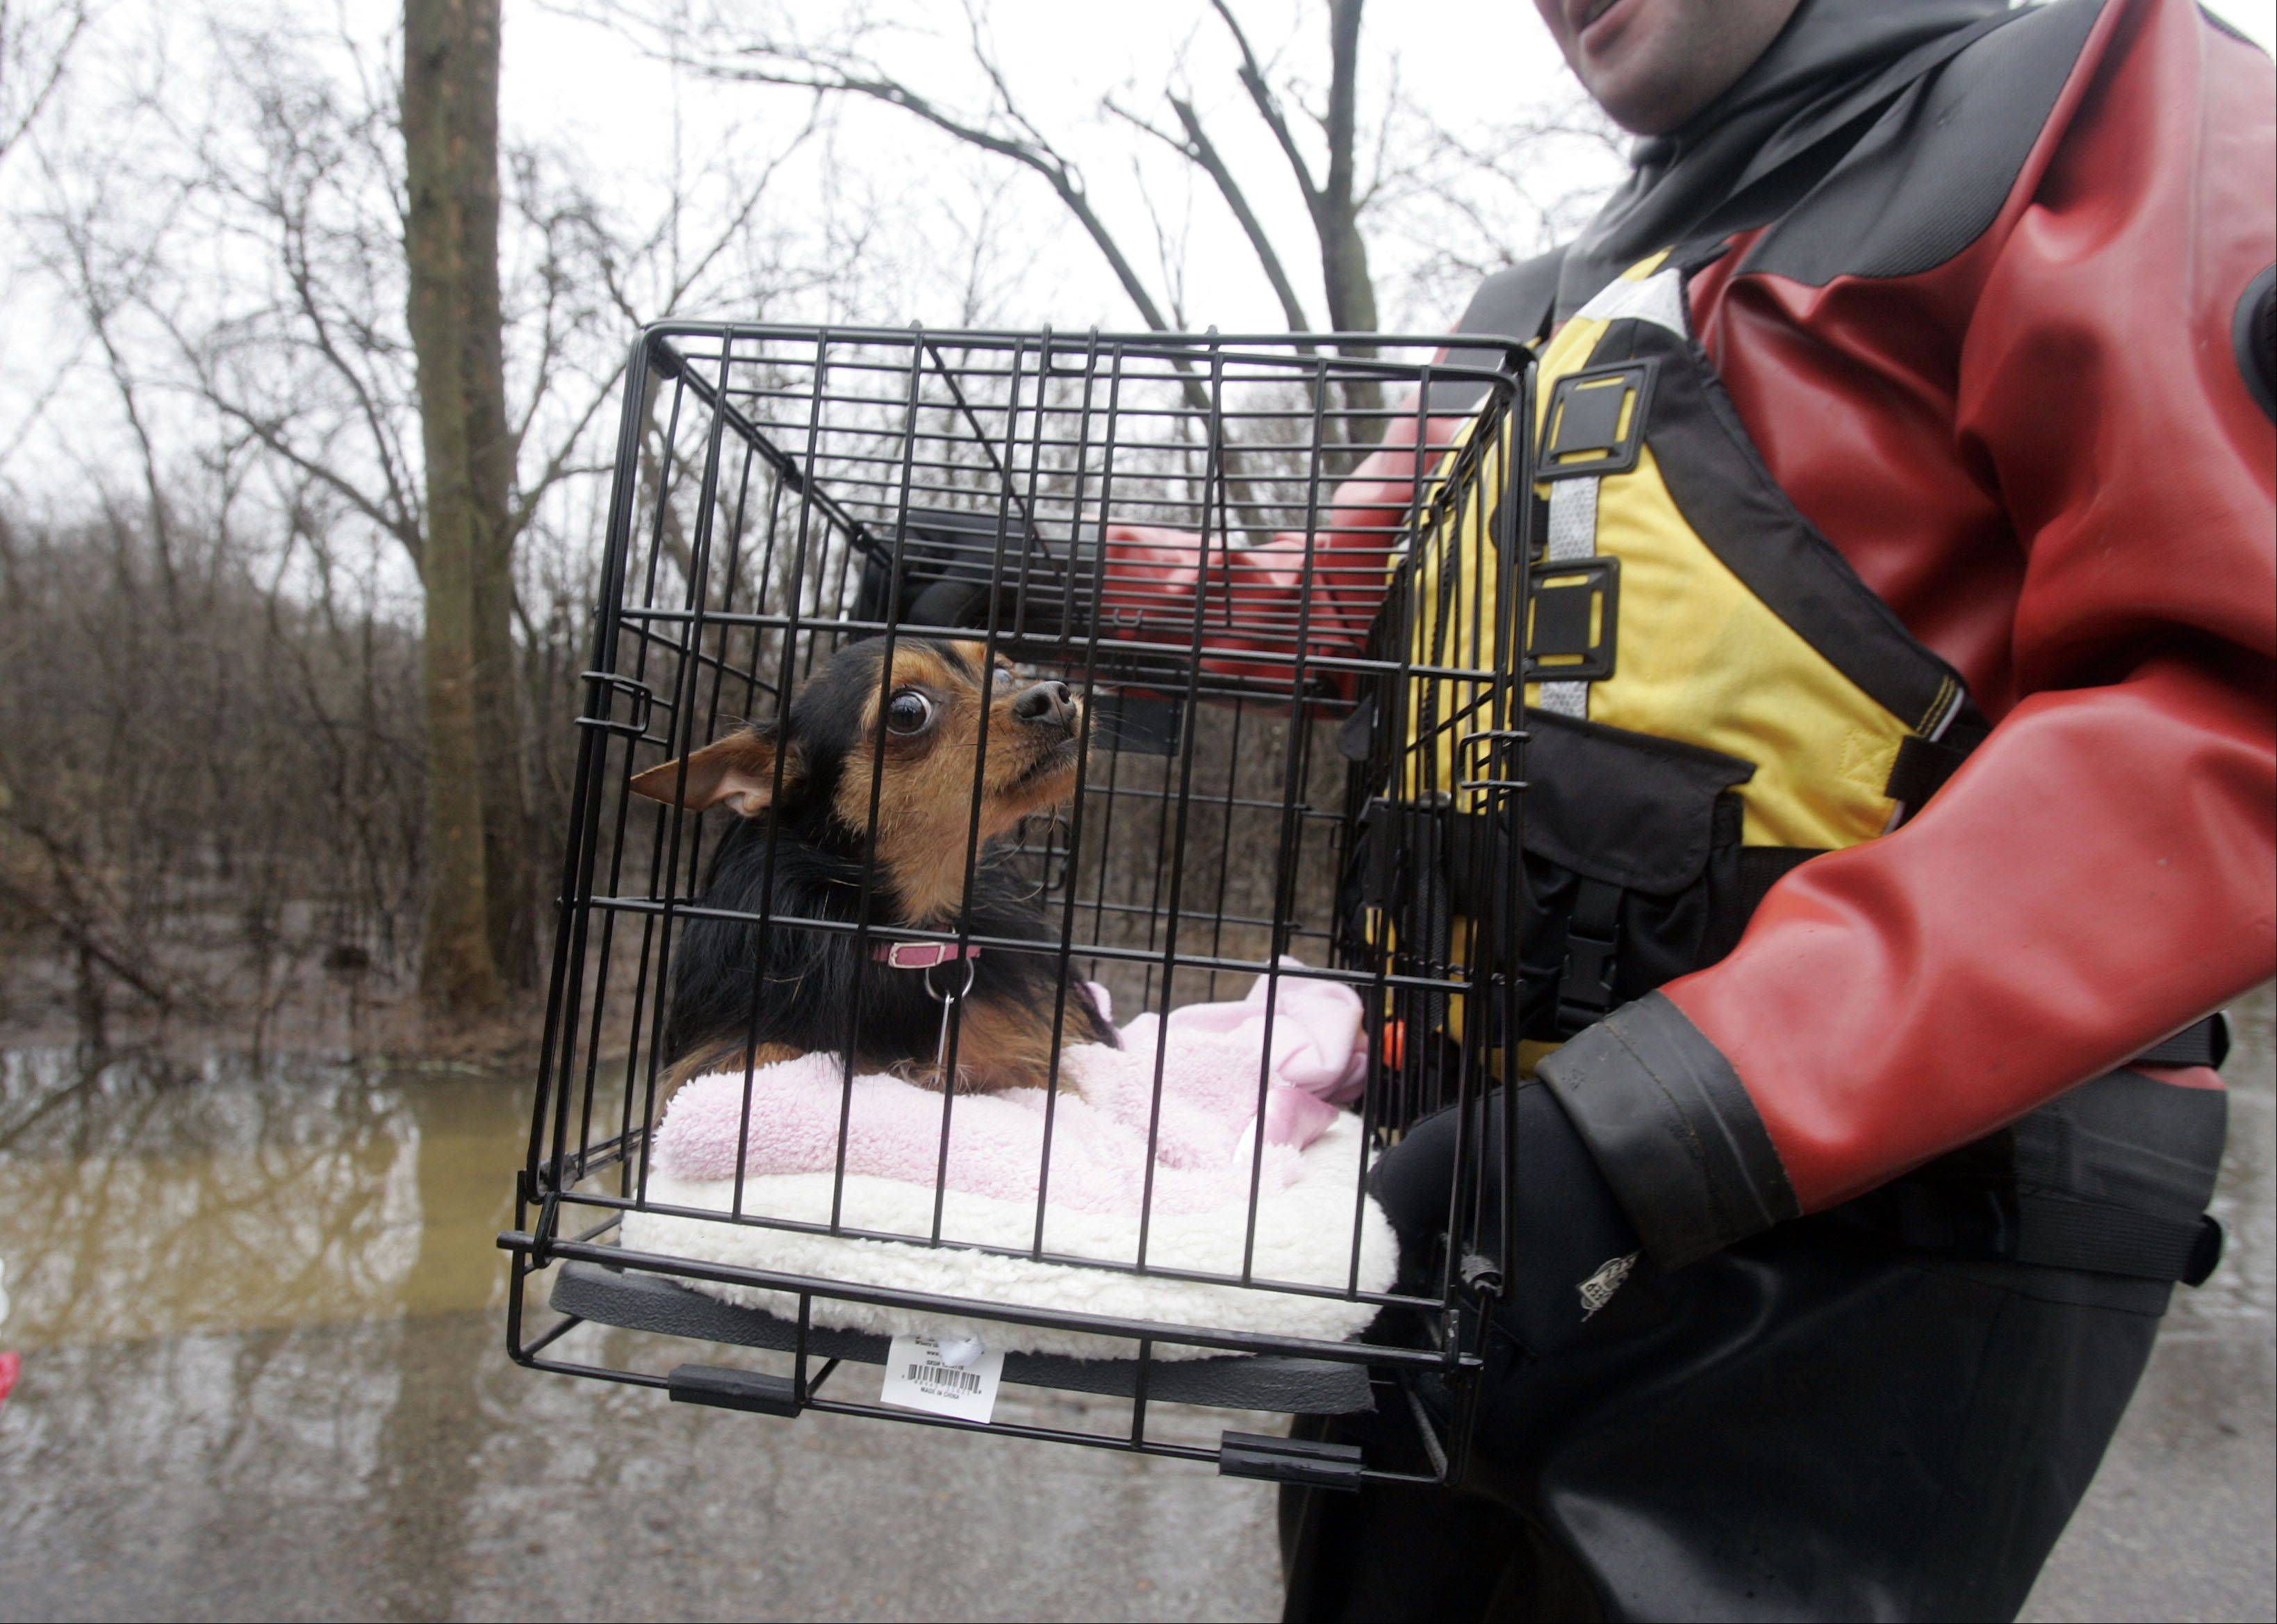 East Dundee firefighter Nick Beauchaine carries a scared Roxi after helping her owner from her home on Fox River Drive along the Fox River in East Dundee during spring flooding.